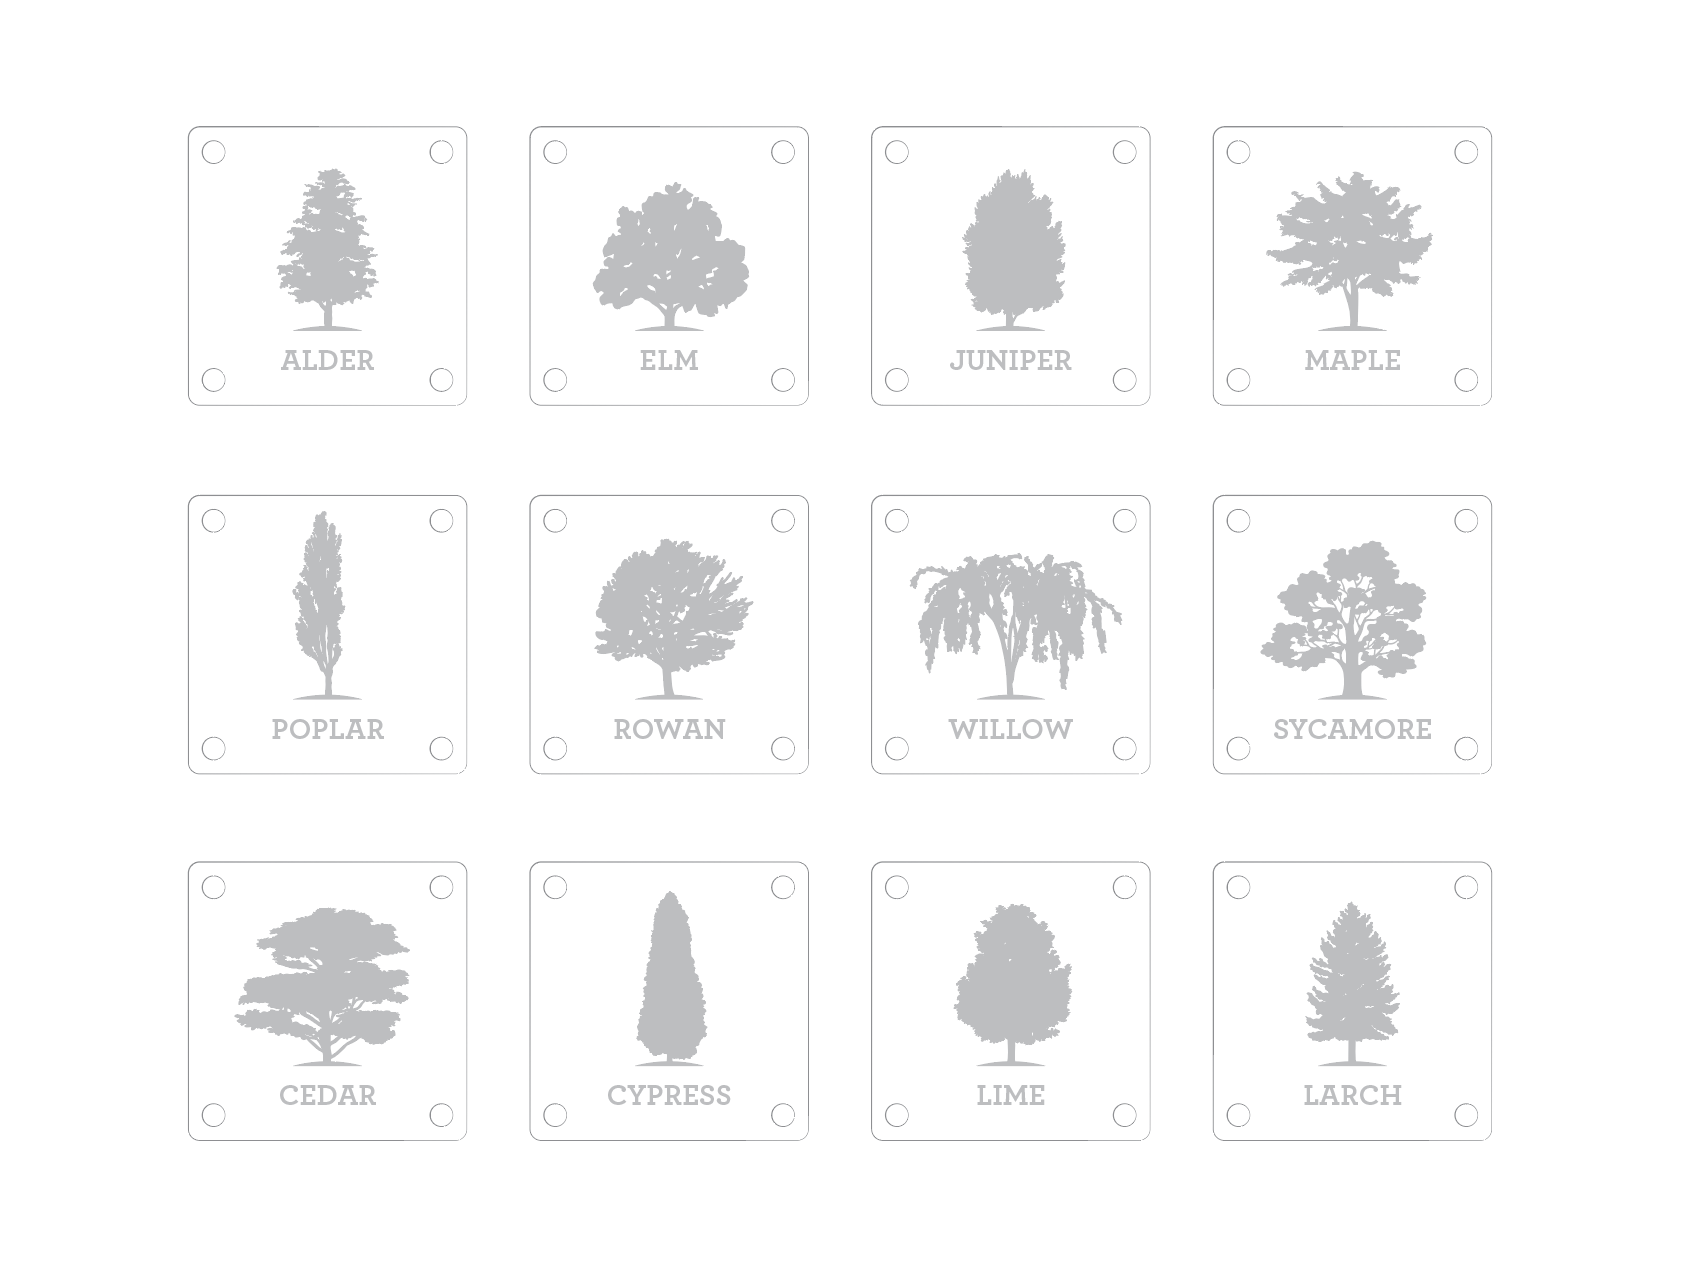 The full series of nameplates, named after various tree types